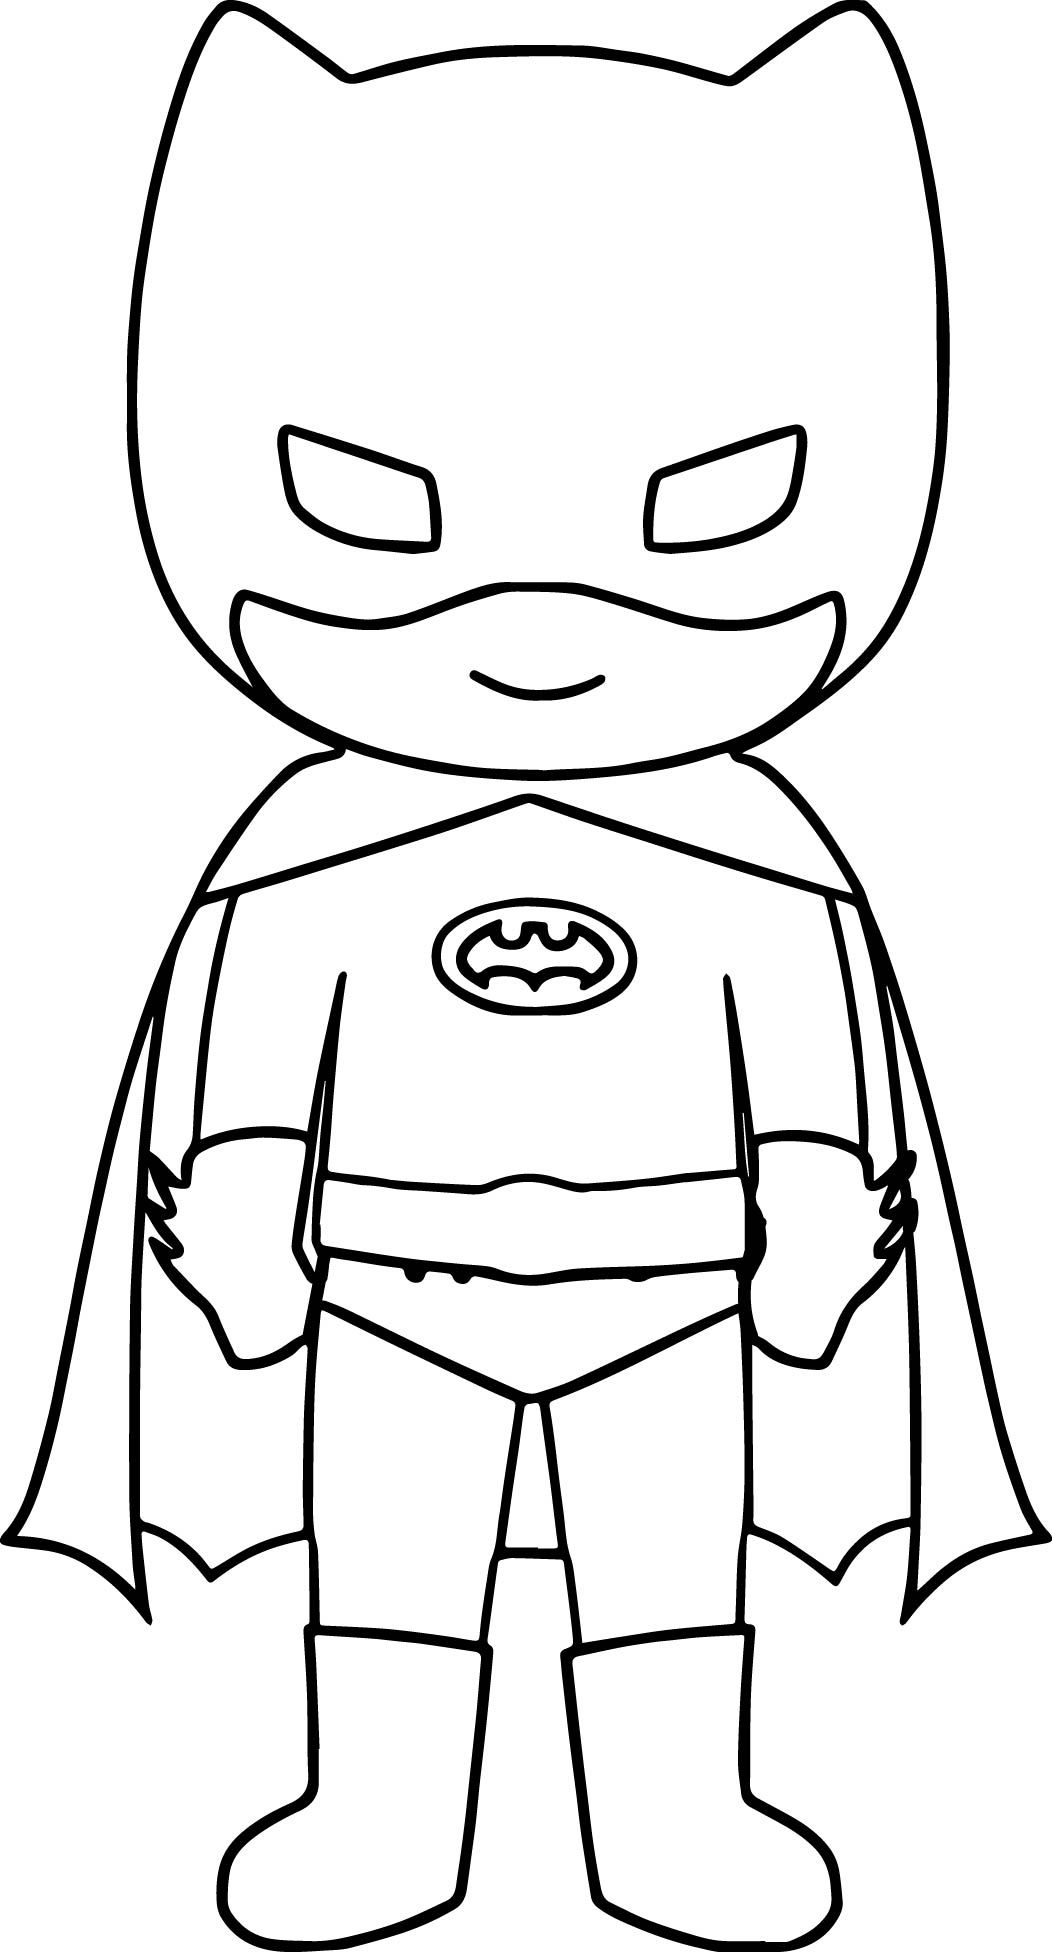 Cool Bat Superhero Kids Coloring Page Con Imagenes Batman Para